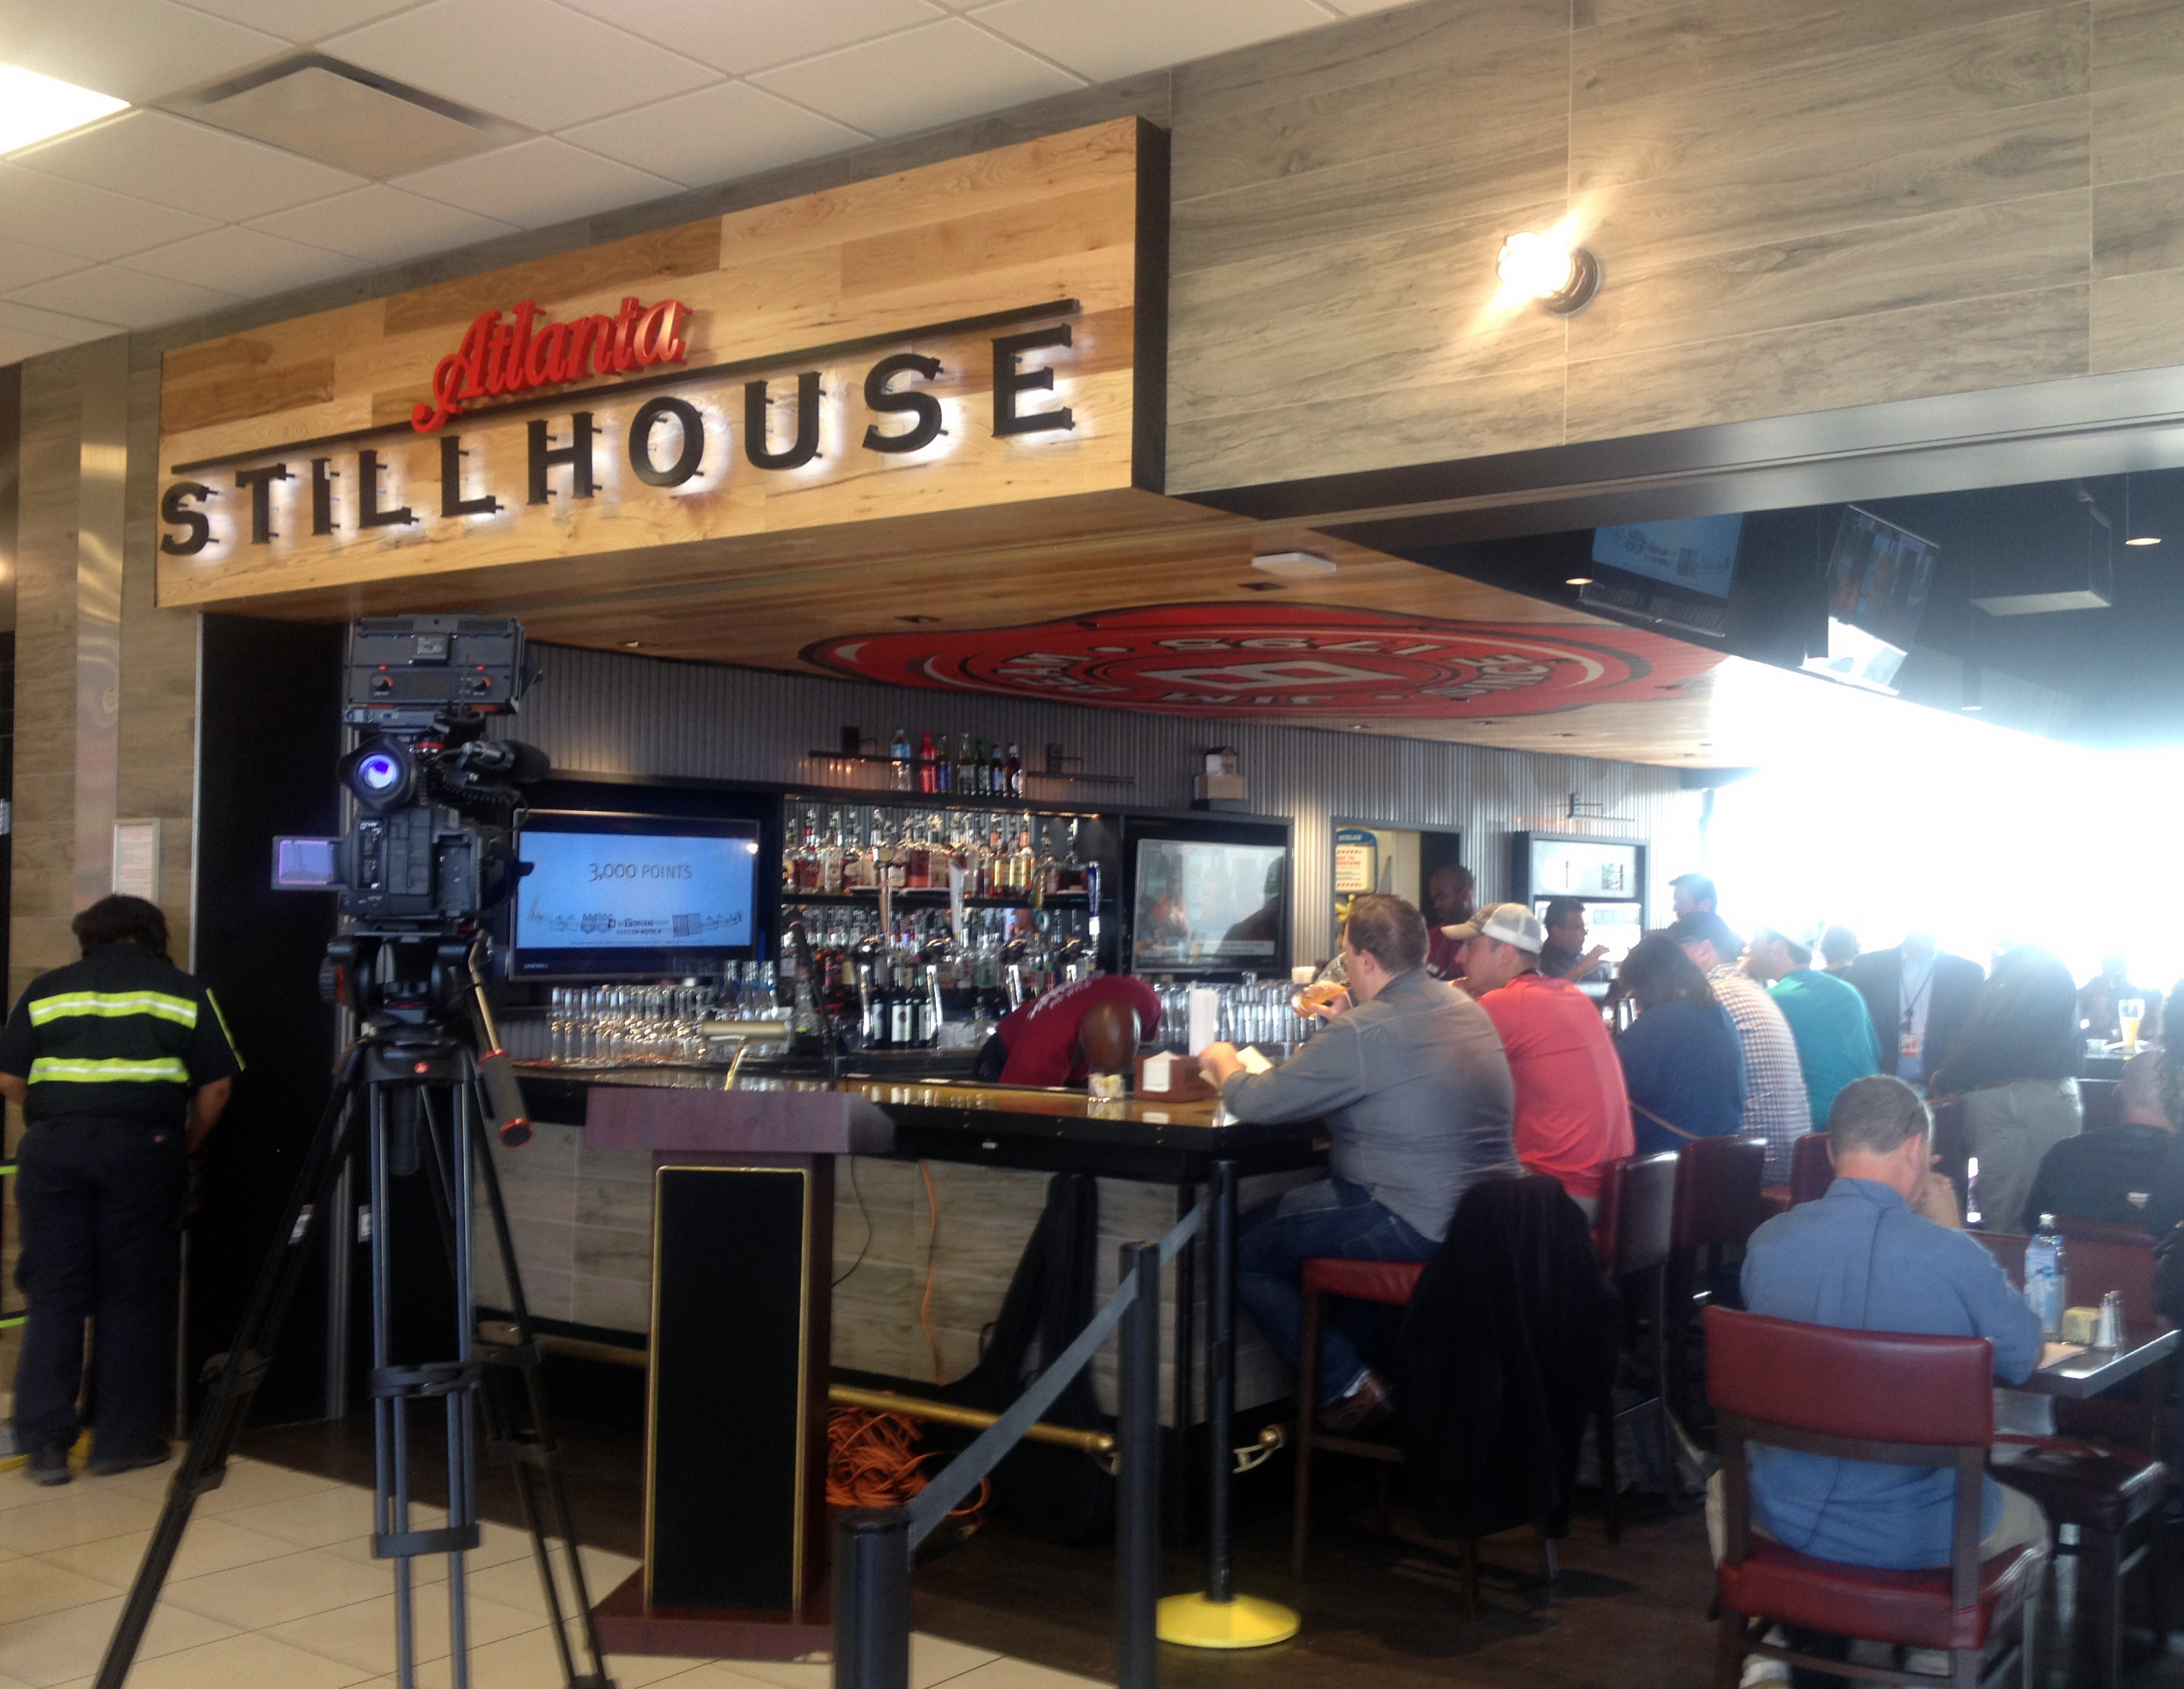 Jim Beam Sponsored Bourbon Bar Atlanta Stillhouse Celebrates Grand